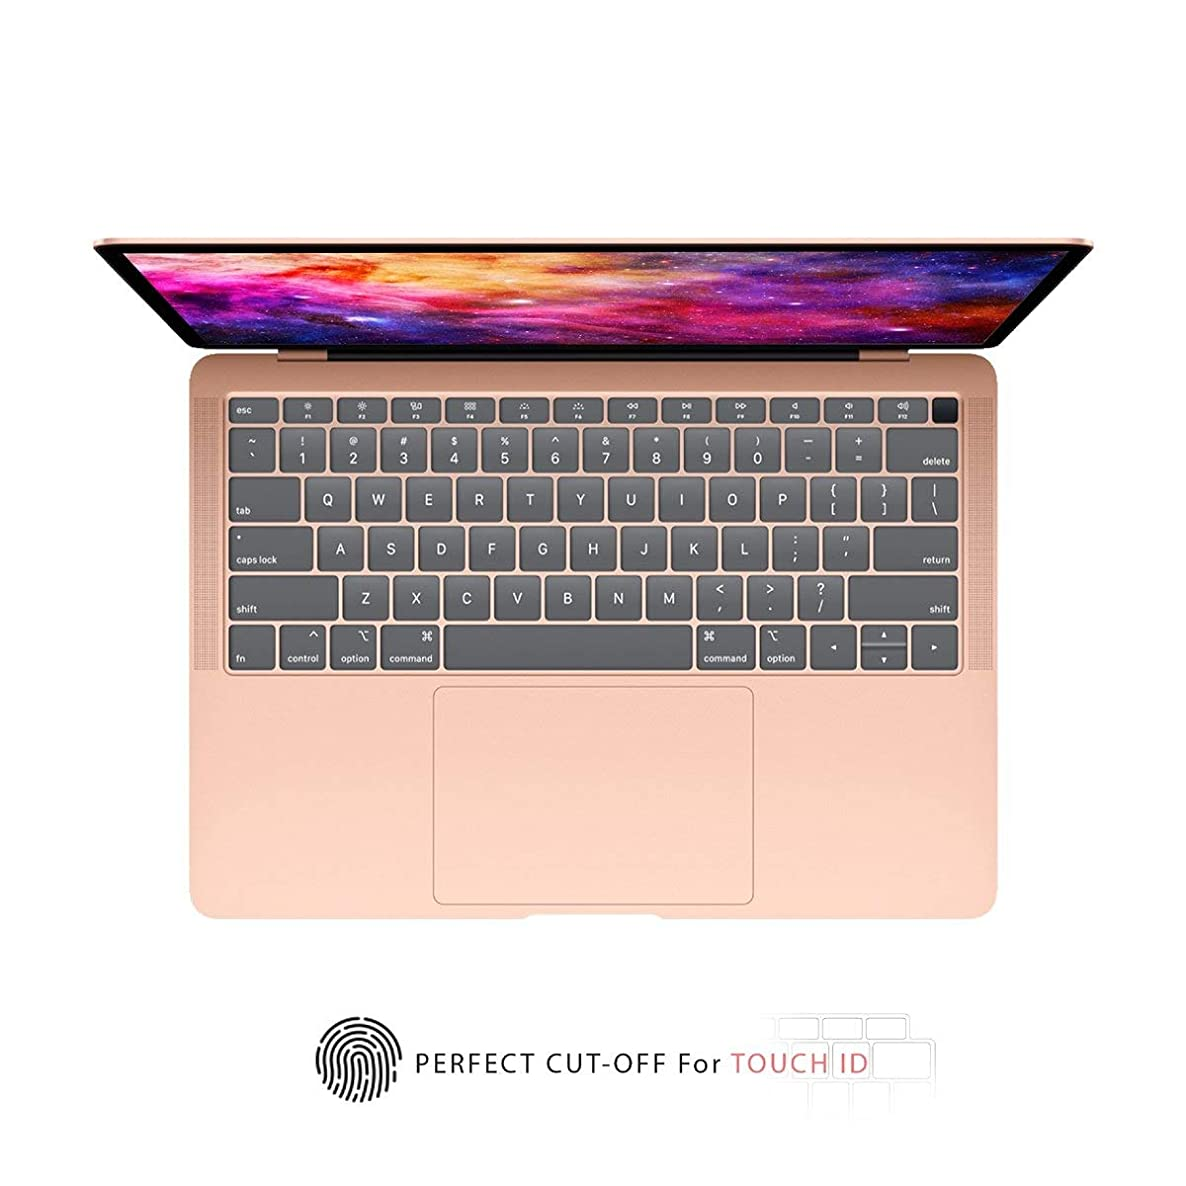 TOP CASE - Ultra Thin TPU Keyboard Cover Skin Compatible with 2018 Release MacBook Air 13 Inch with Retina Display fits Touch ID Model: A1932 - Clear